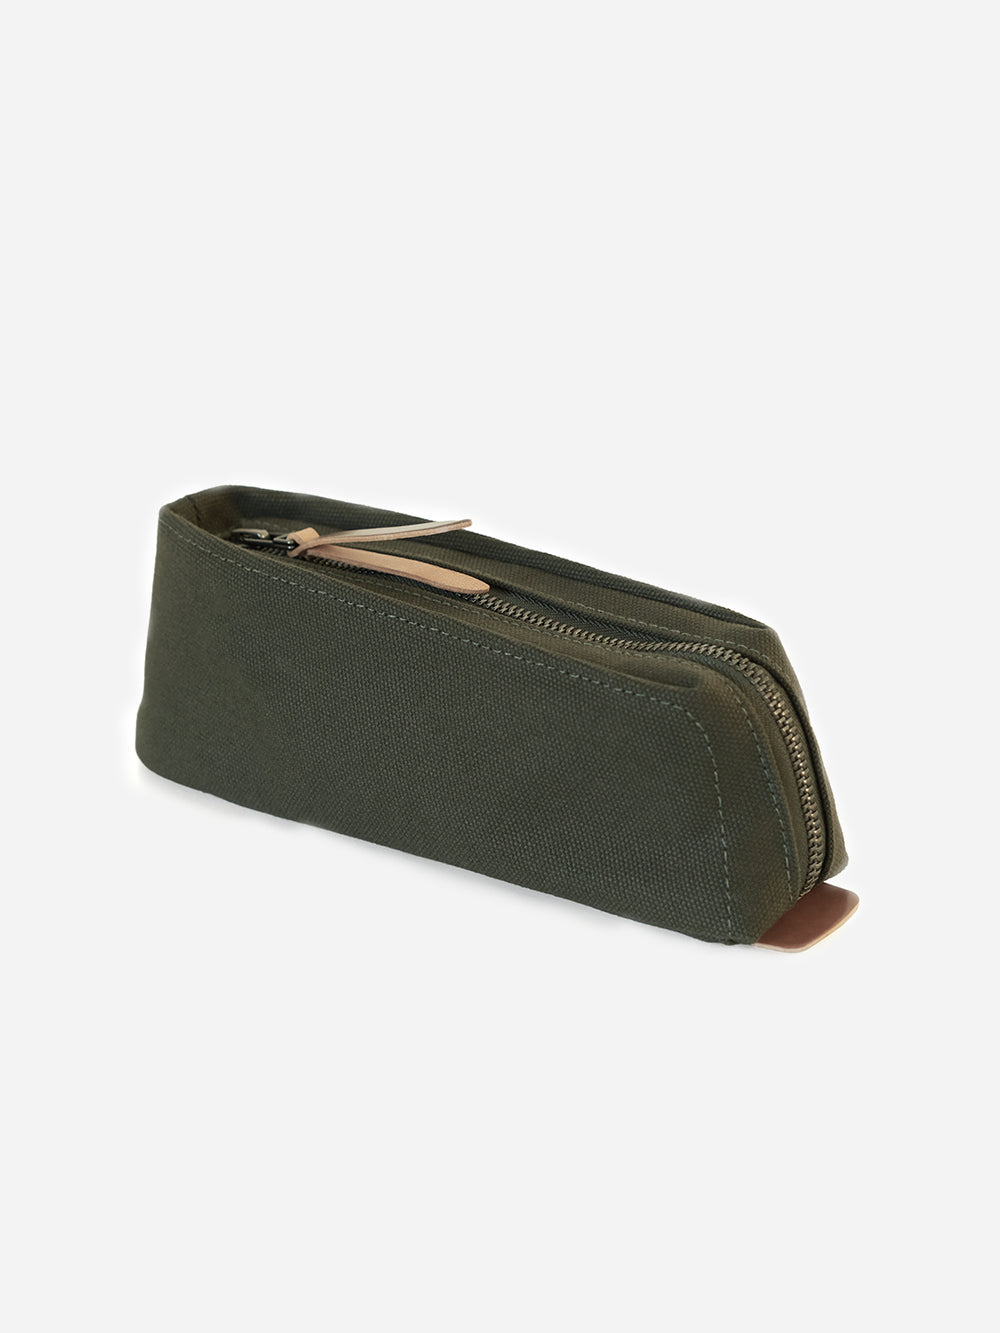 ARMY GREEN canvas pencil and pen case Makr